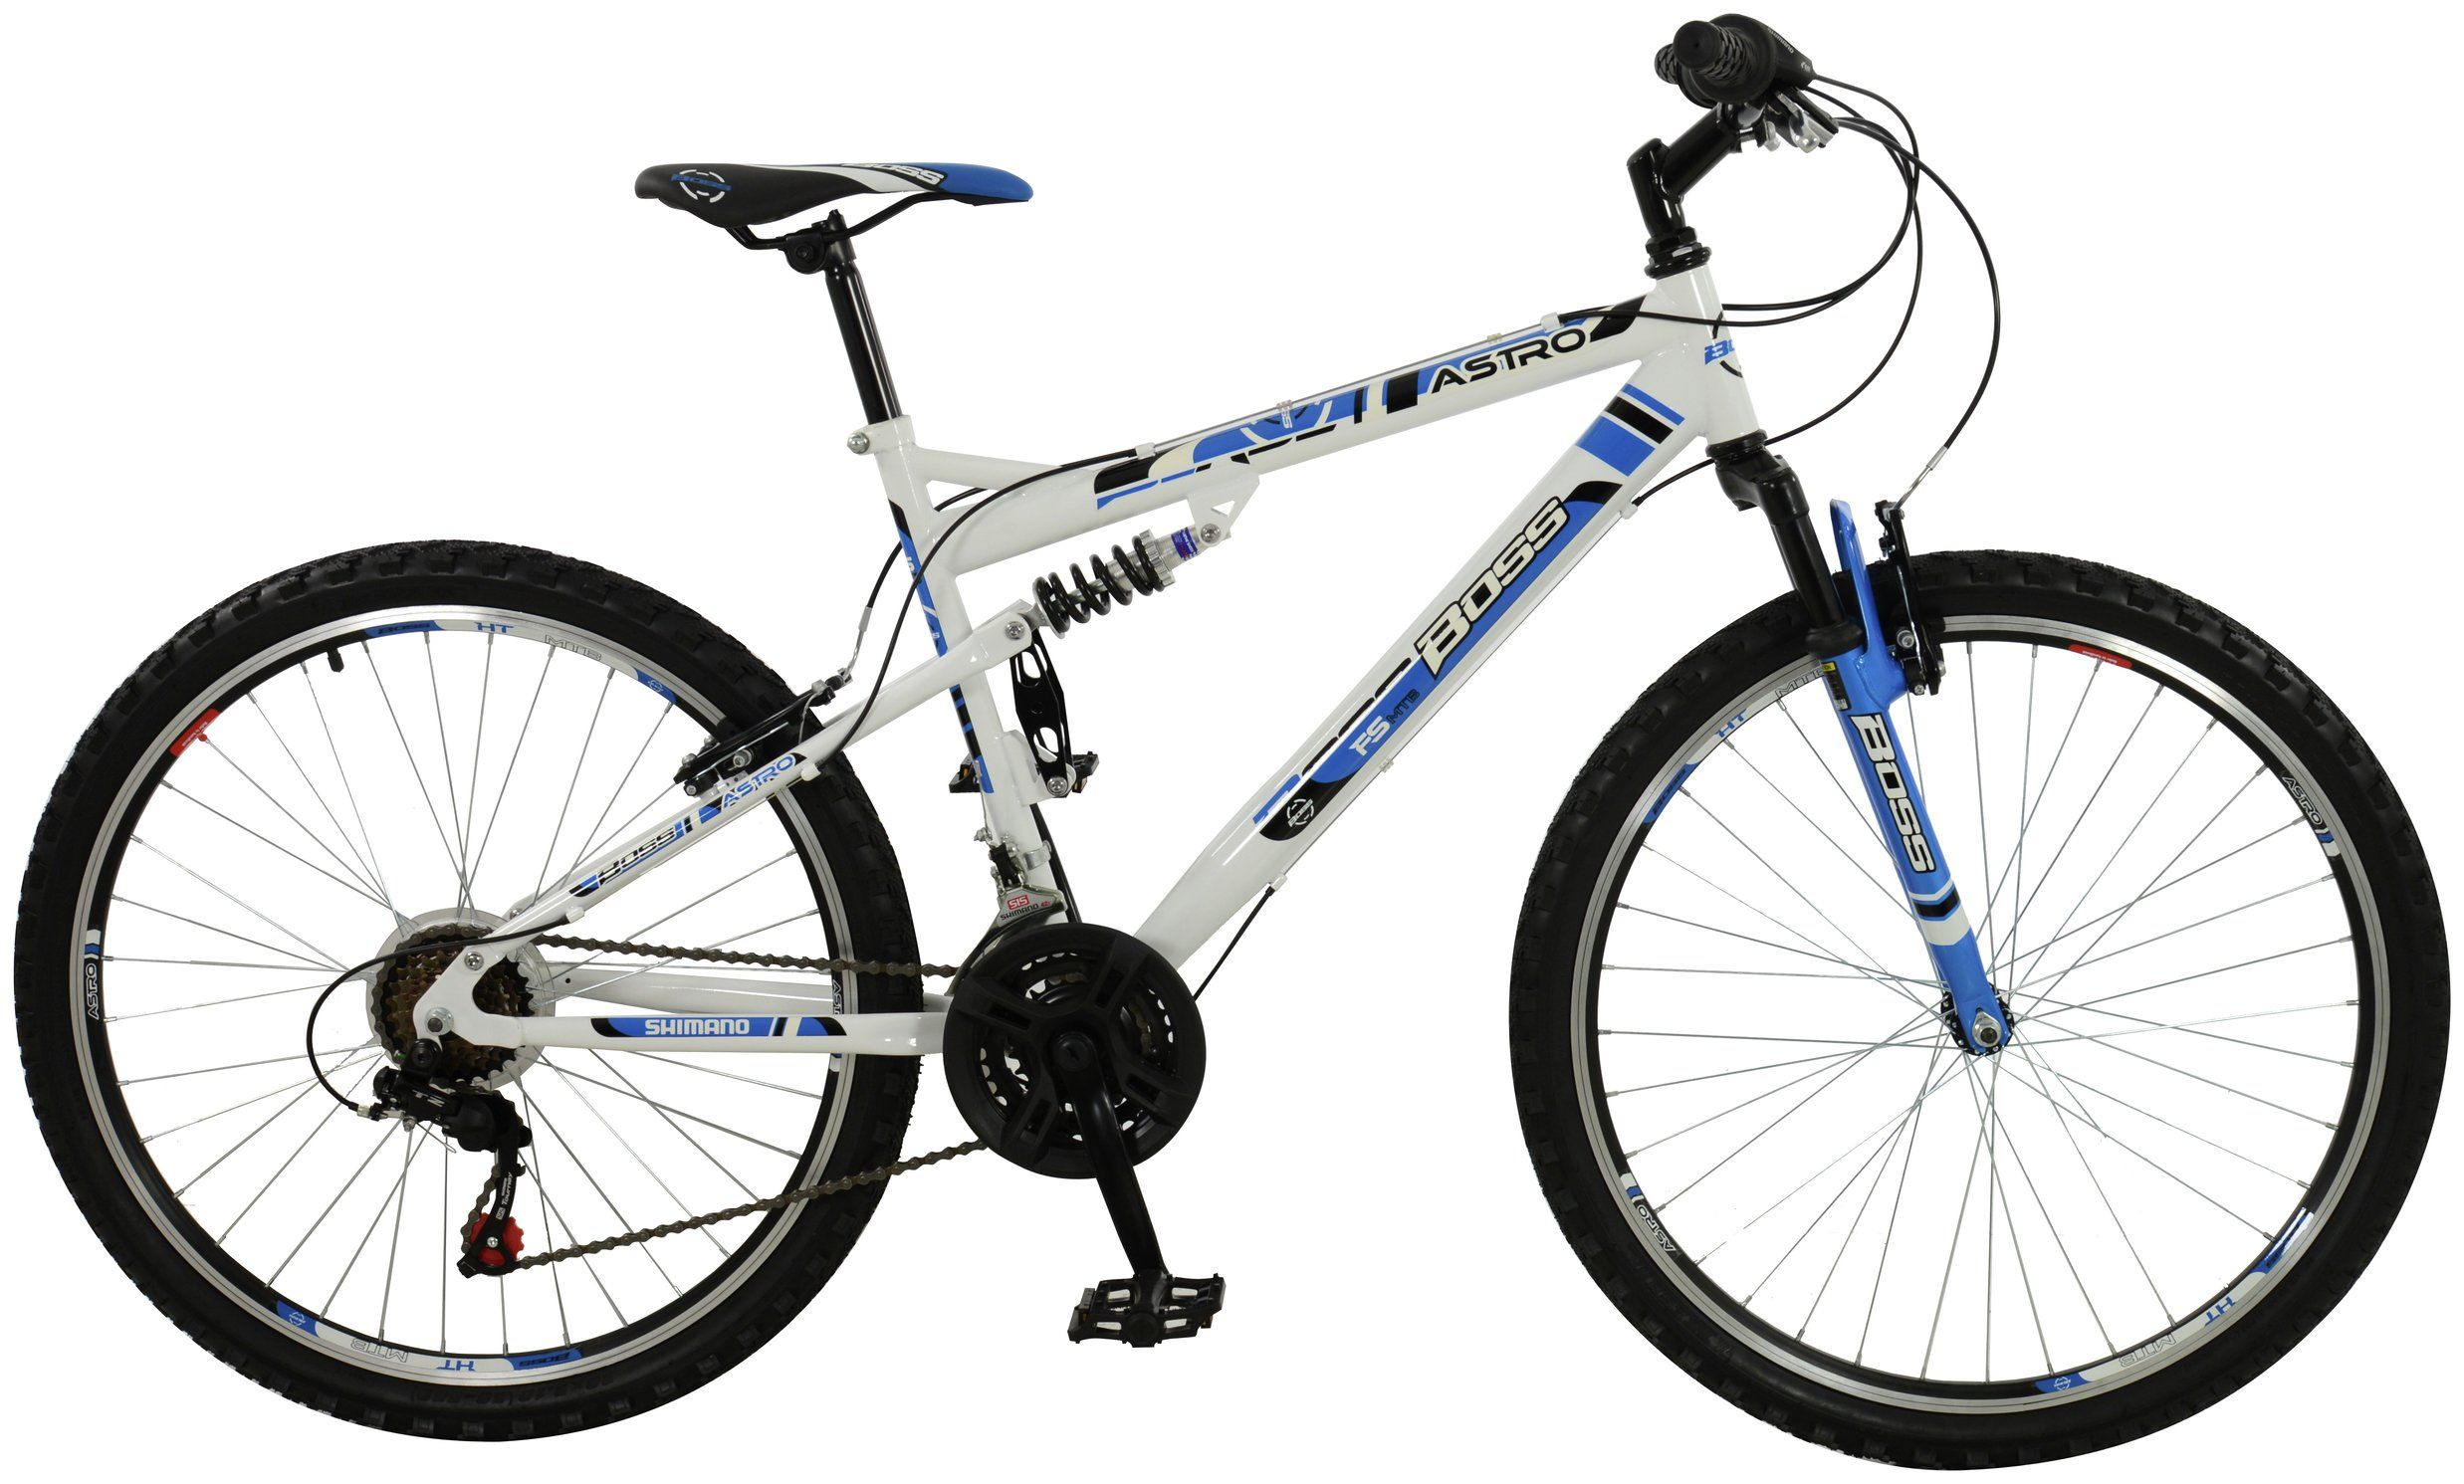 Buy Boss Astro 26 Inch Wheel Size Mens Mountain Bike Mens And